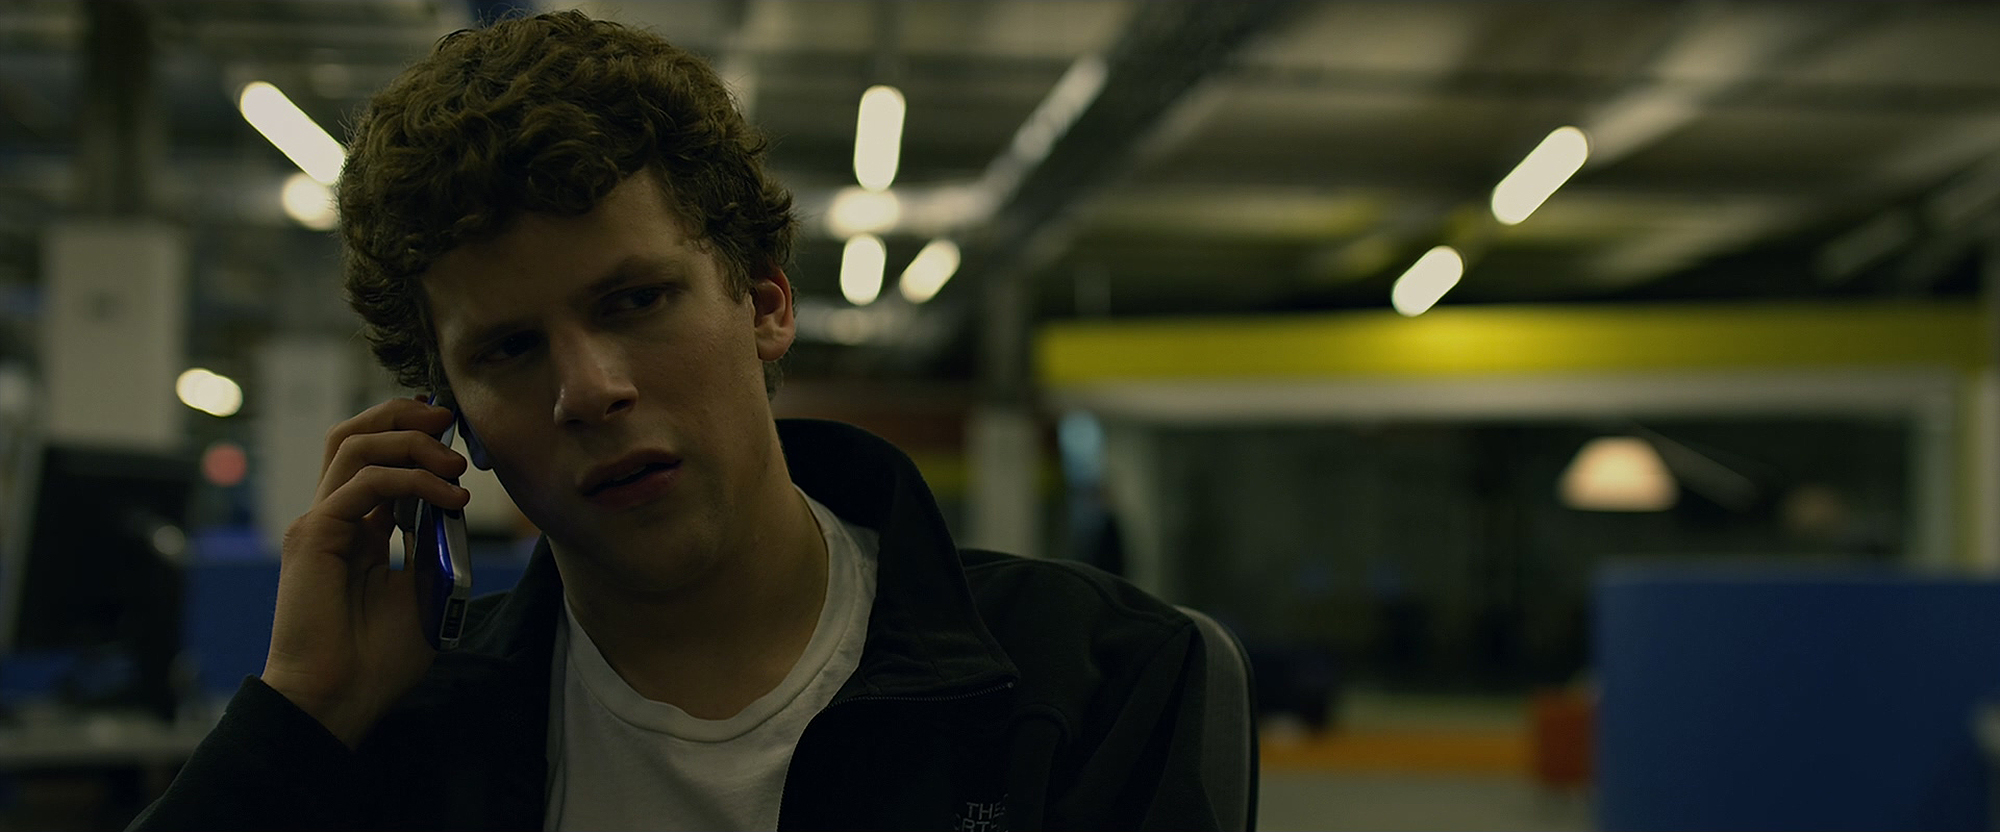 2010. The Social Network 02